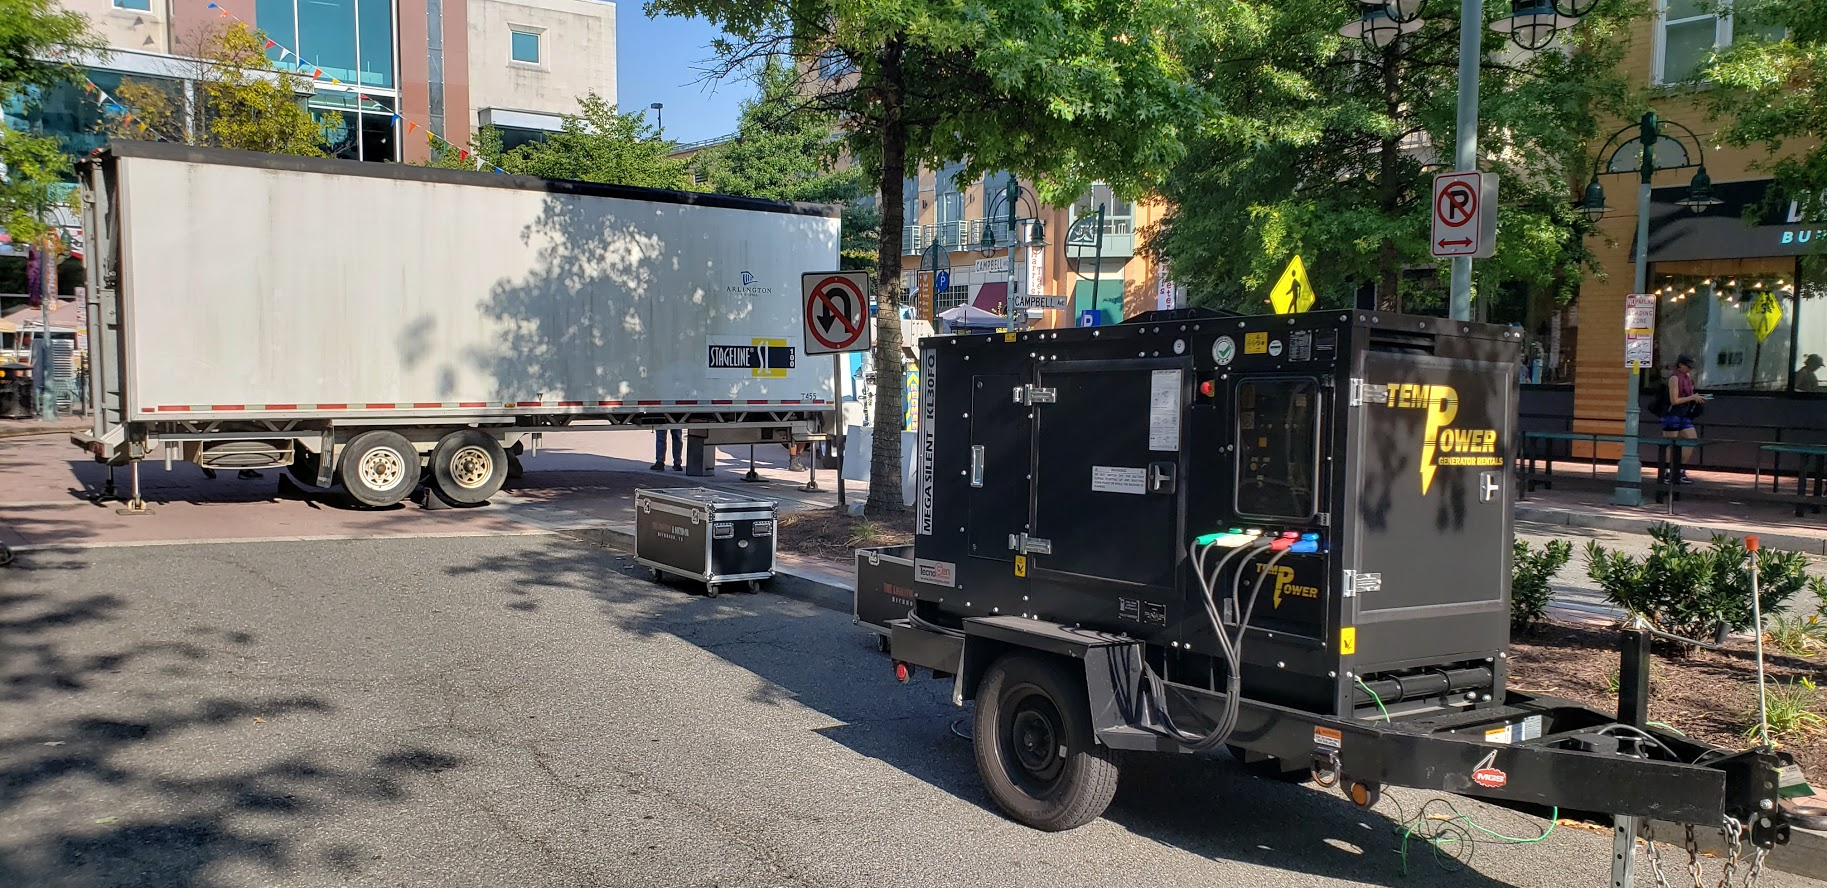 A portable quiet-run generator and mobile stage are set up for an event